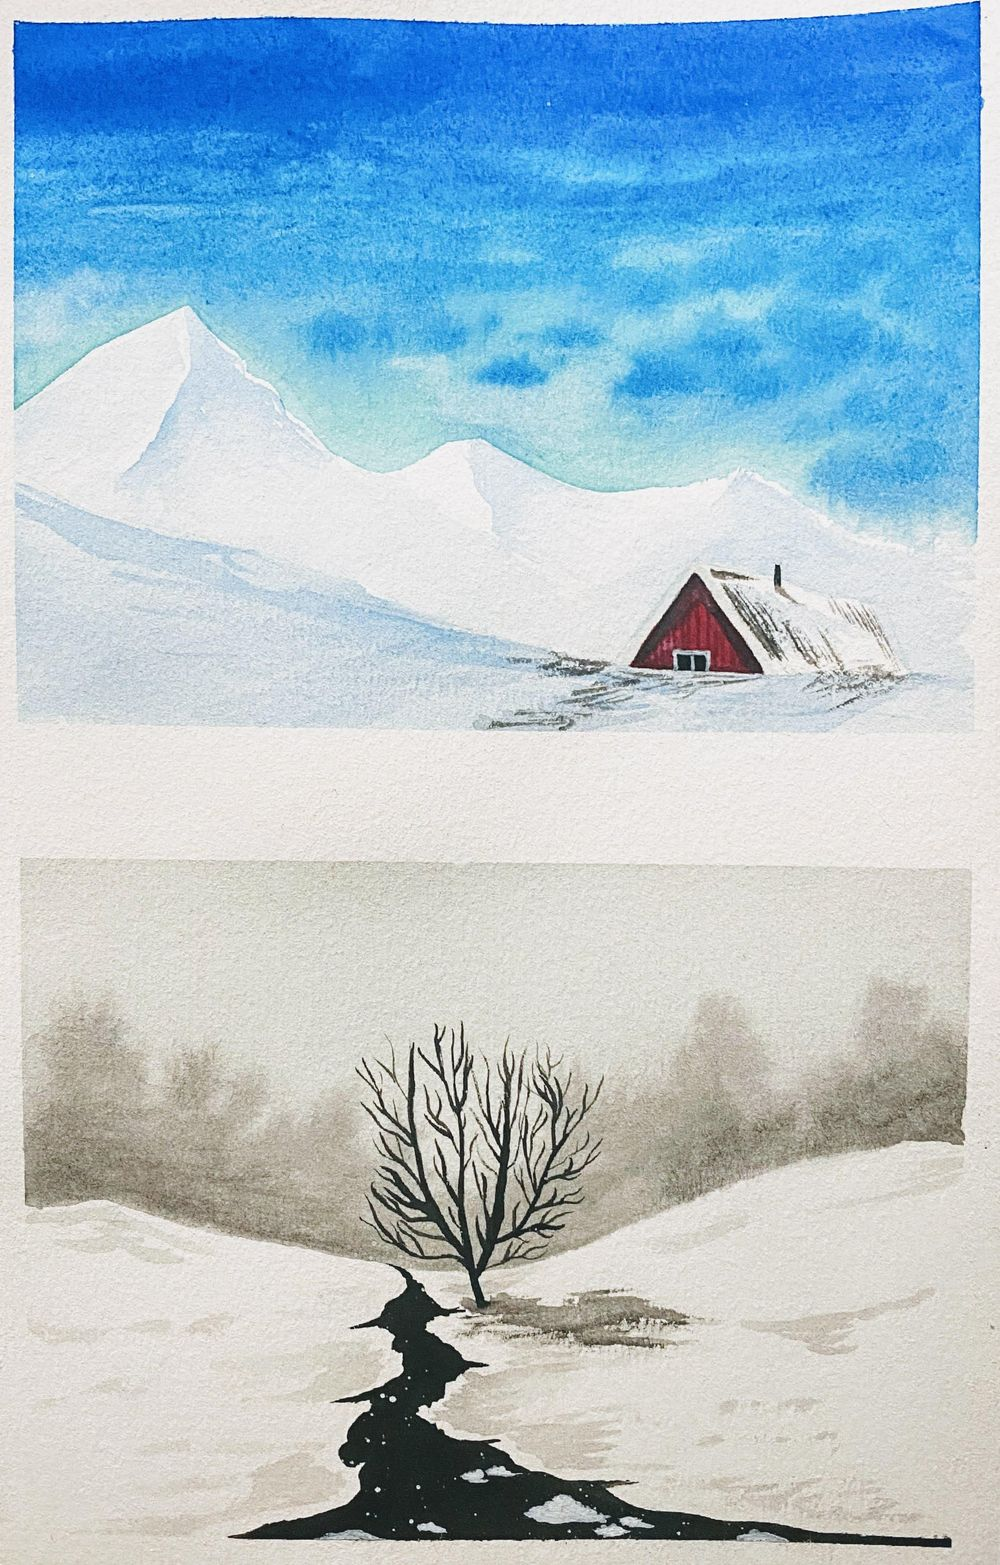 Learnt so much about painting snow - image 1 - student project